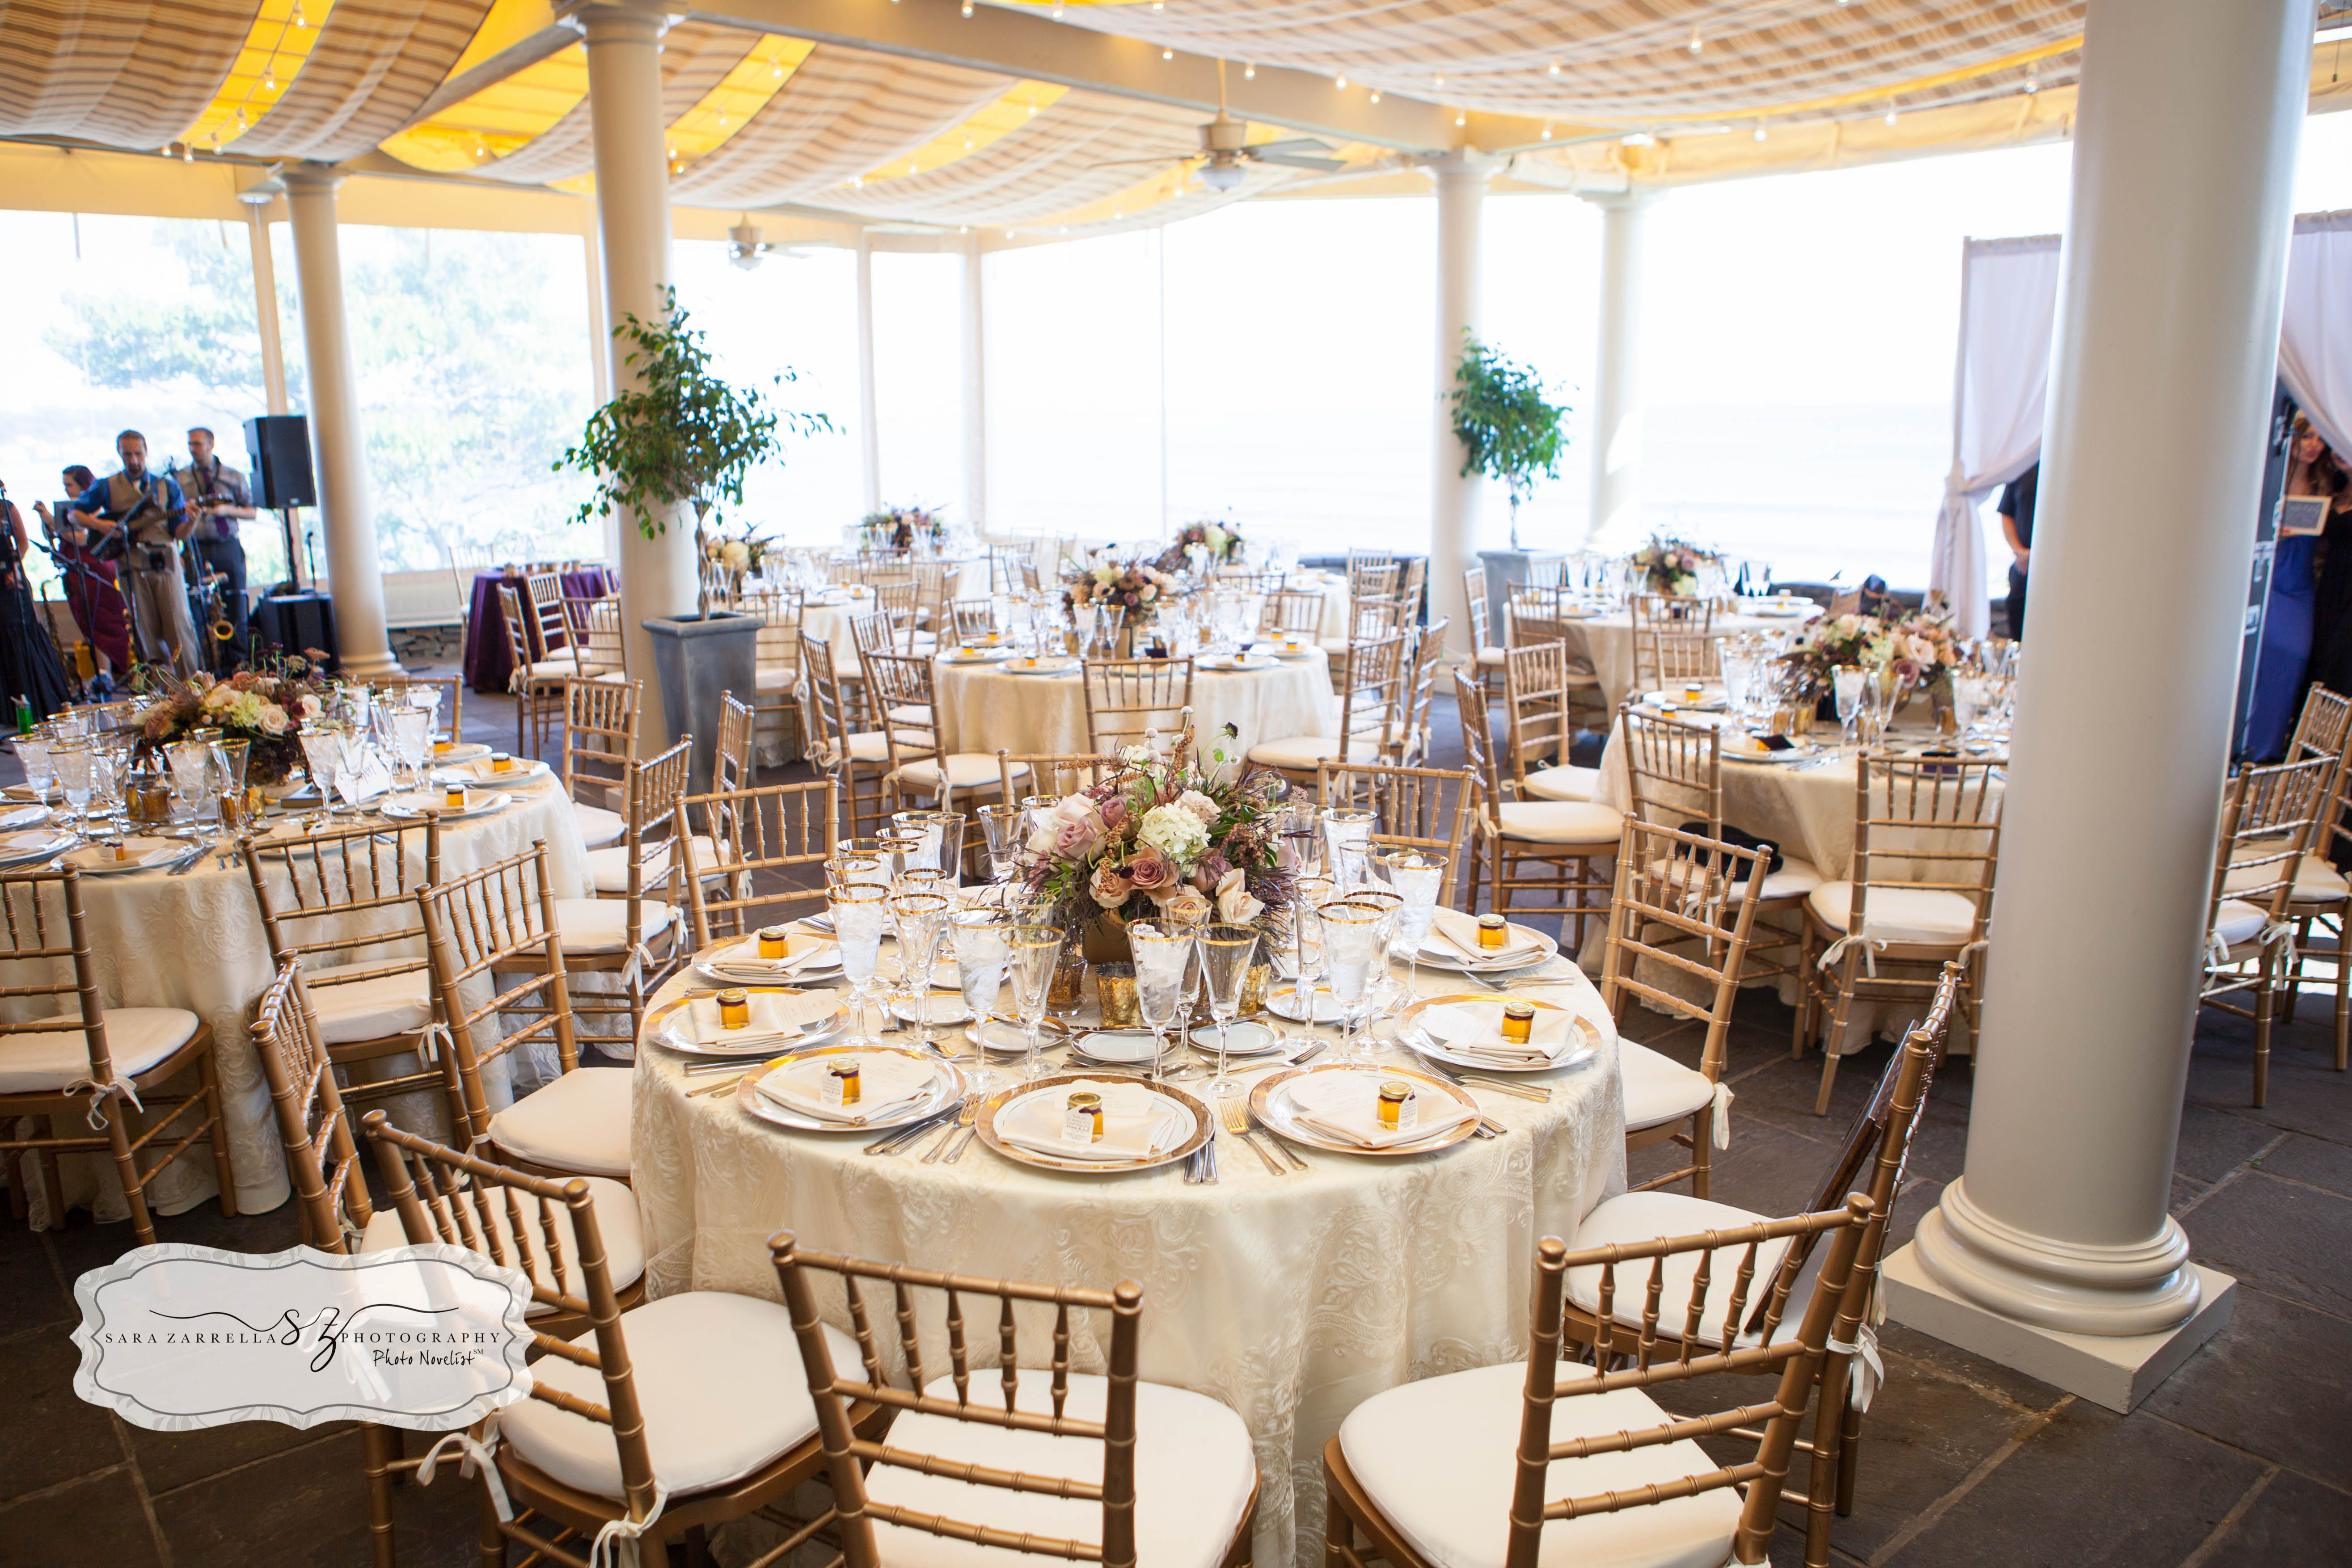 Pin By The Chanler At Cliff Walk On Terrace Wedding Summer Jessica Aj Photography By Sara Zarrella Newport Ri Wedding Rhode Island Wedding Storybook Wedding